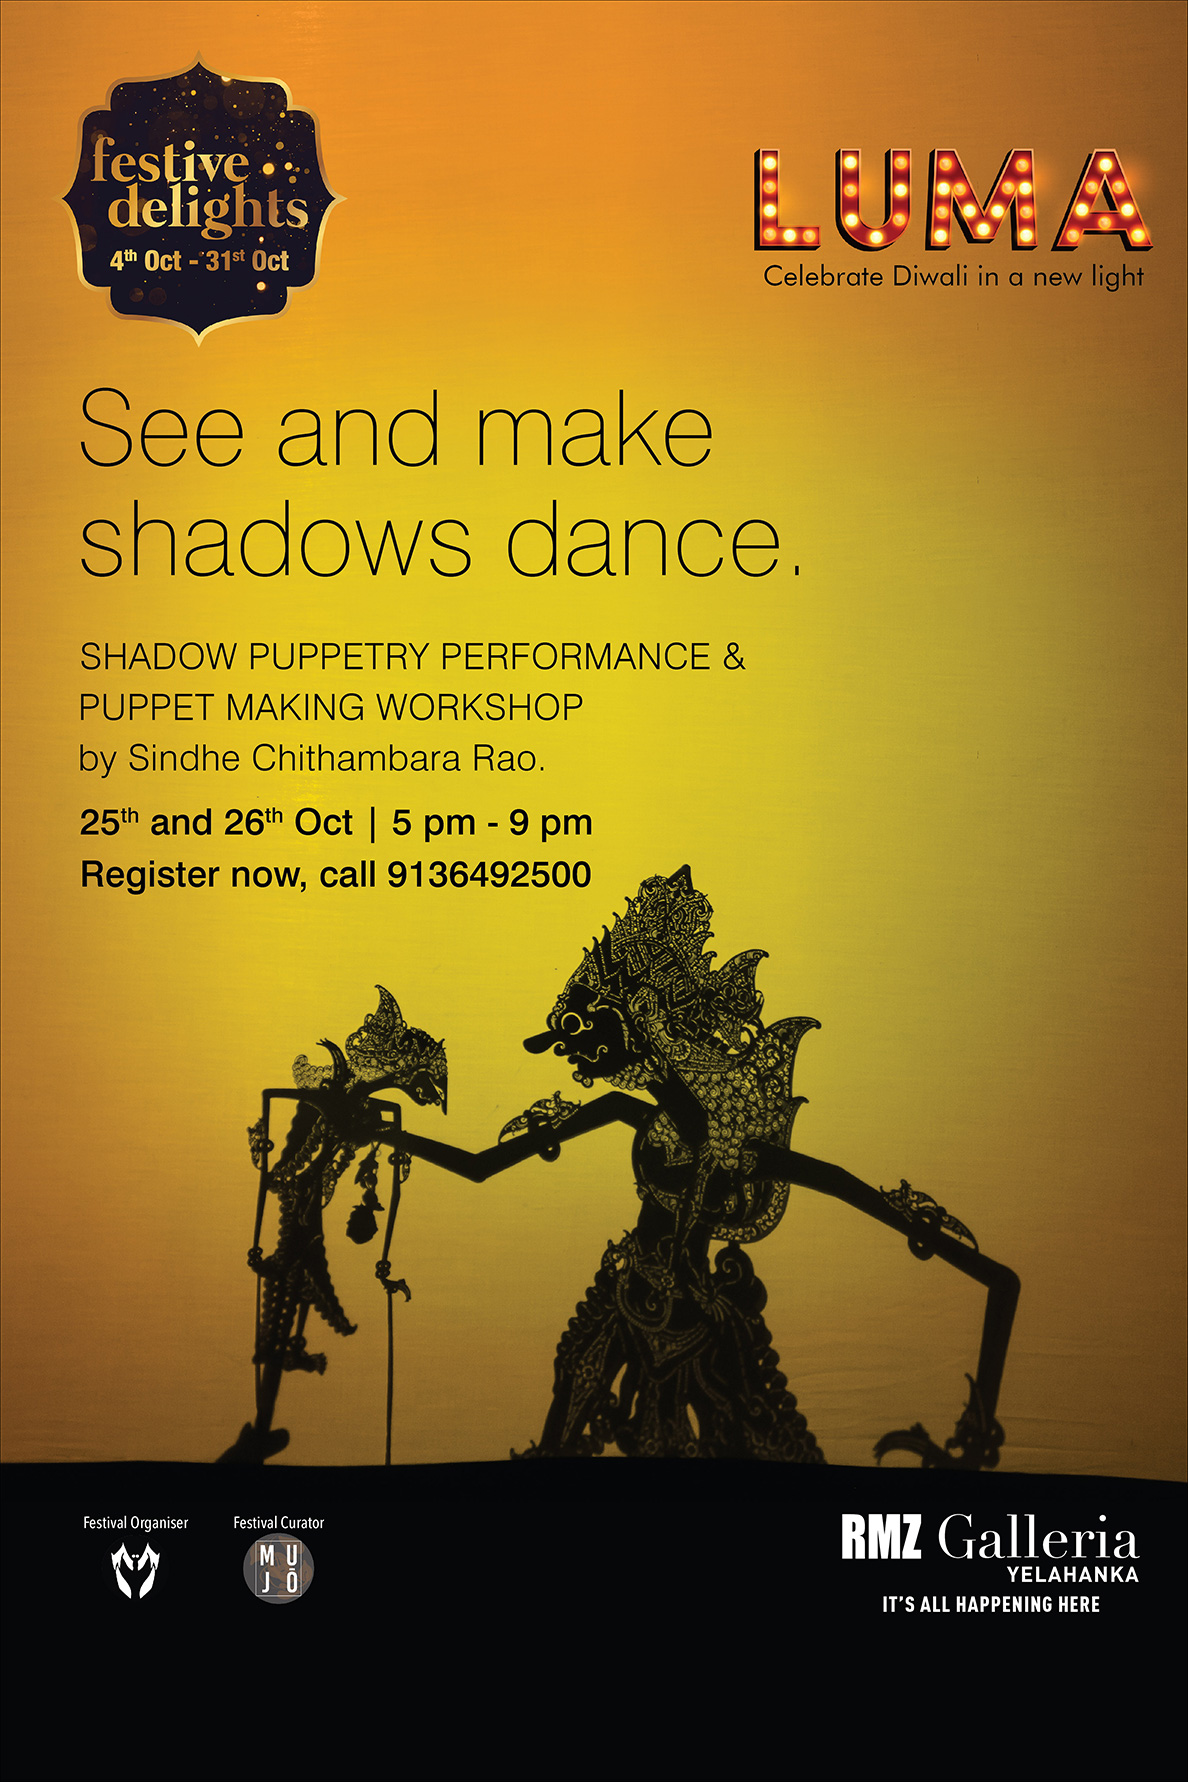 Shadow Puppetry : Performance and Workshop by Sindhe Chithambara Rao